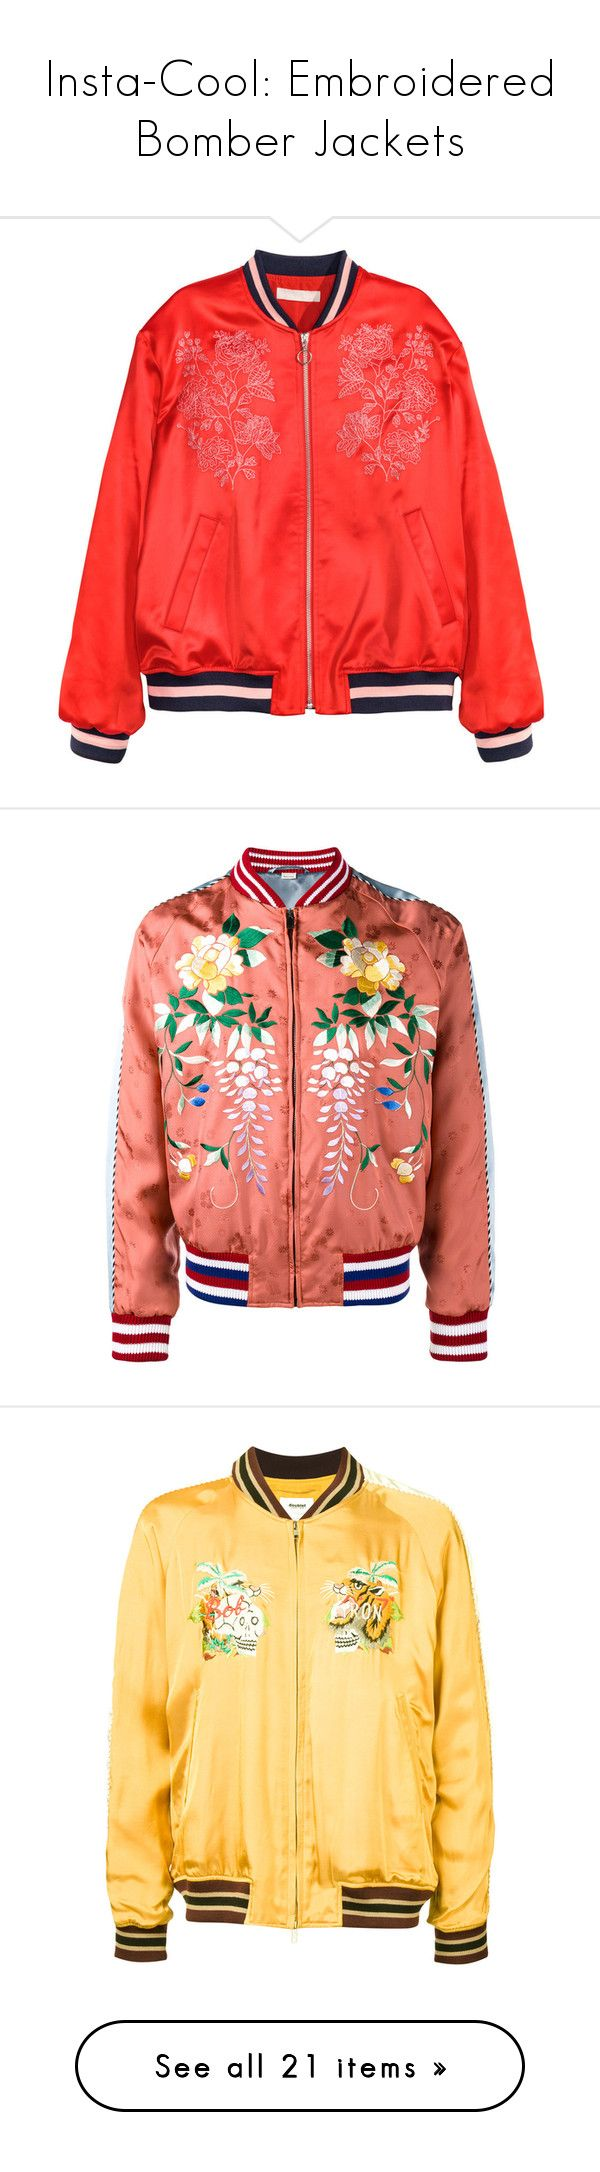 """Insta-Cool: Embroidered Bomber Jackets"" by polyvore-editorial ❤ liked on Polyvore featuring embroideredbomberjackets, outerwear, jackets, bomber jacket, coats & jackets, flight jacket, zip jacket, red zipper jacket, satin jackets and bomber style jacket"